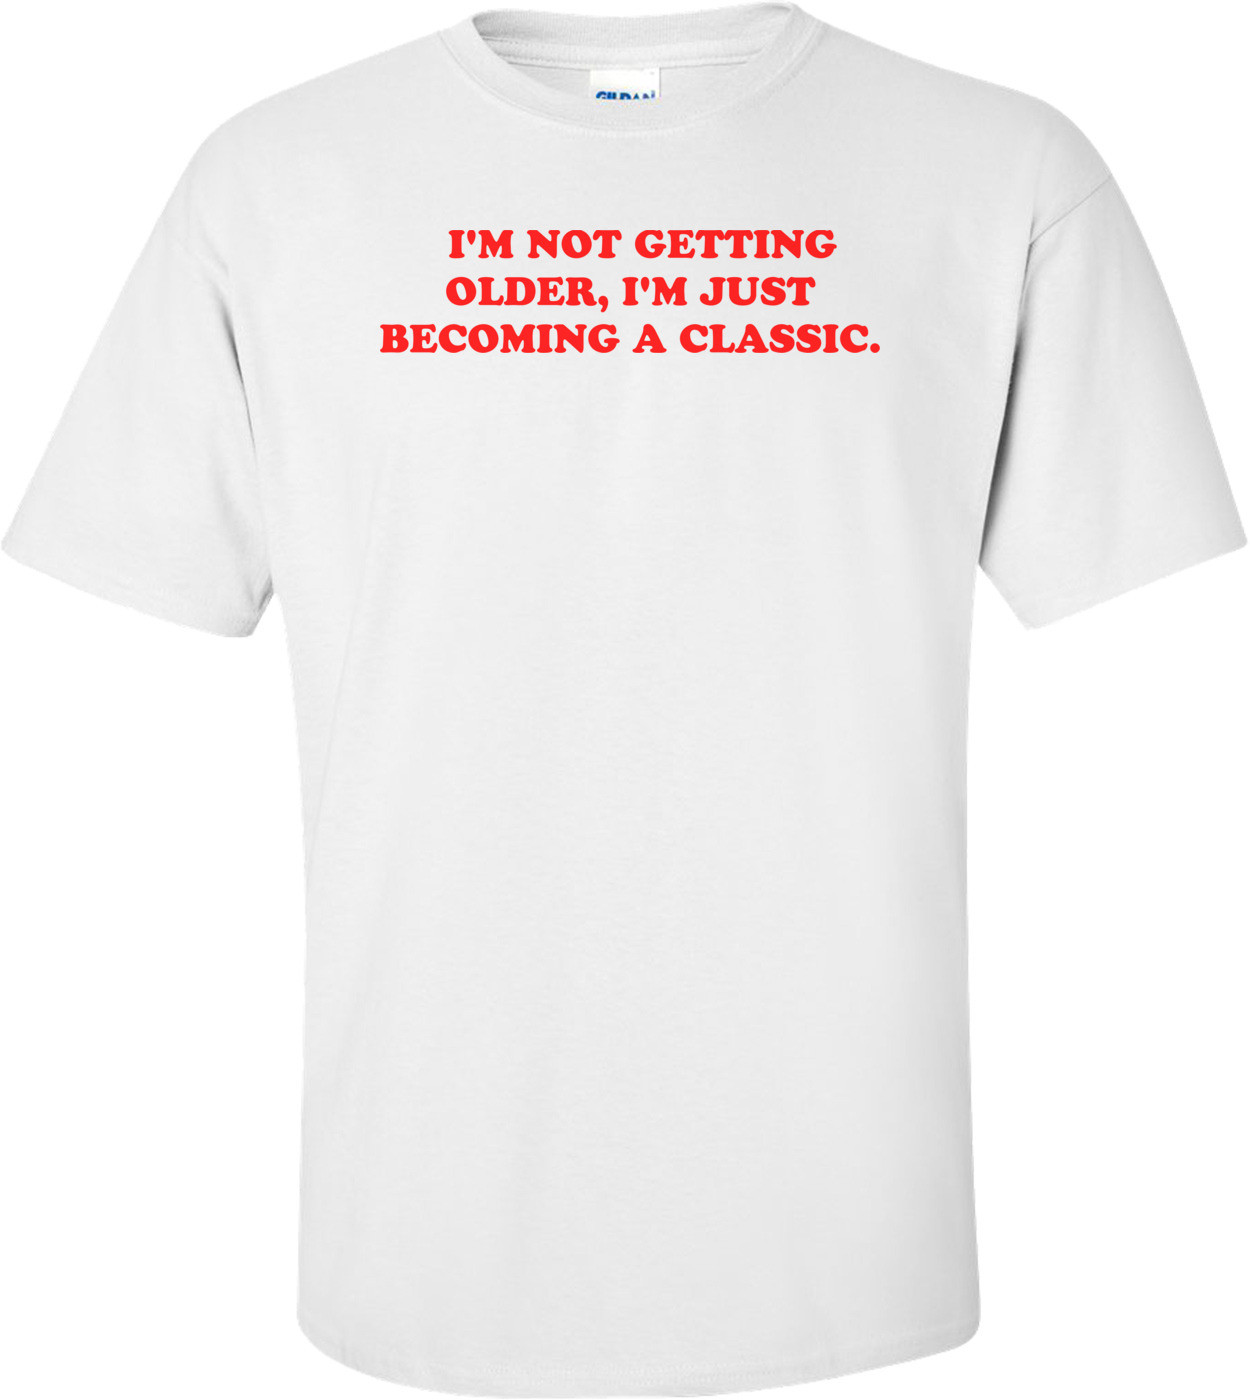 I'M NOT GETTING OLDER, I'M JUST BECOMING A CLASSIC. Shirt